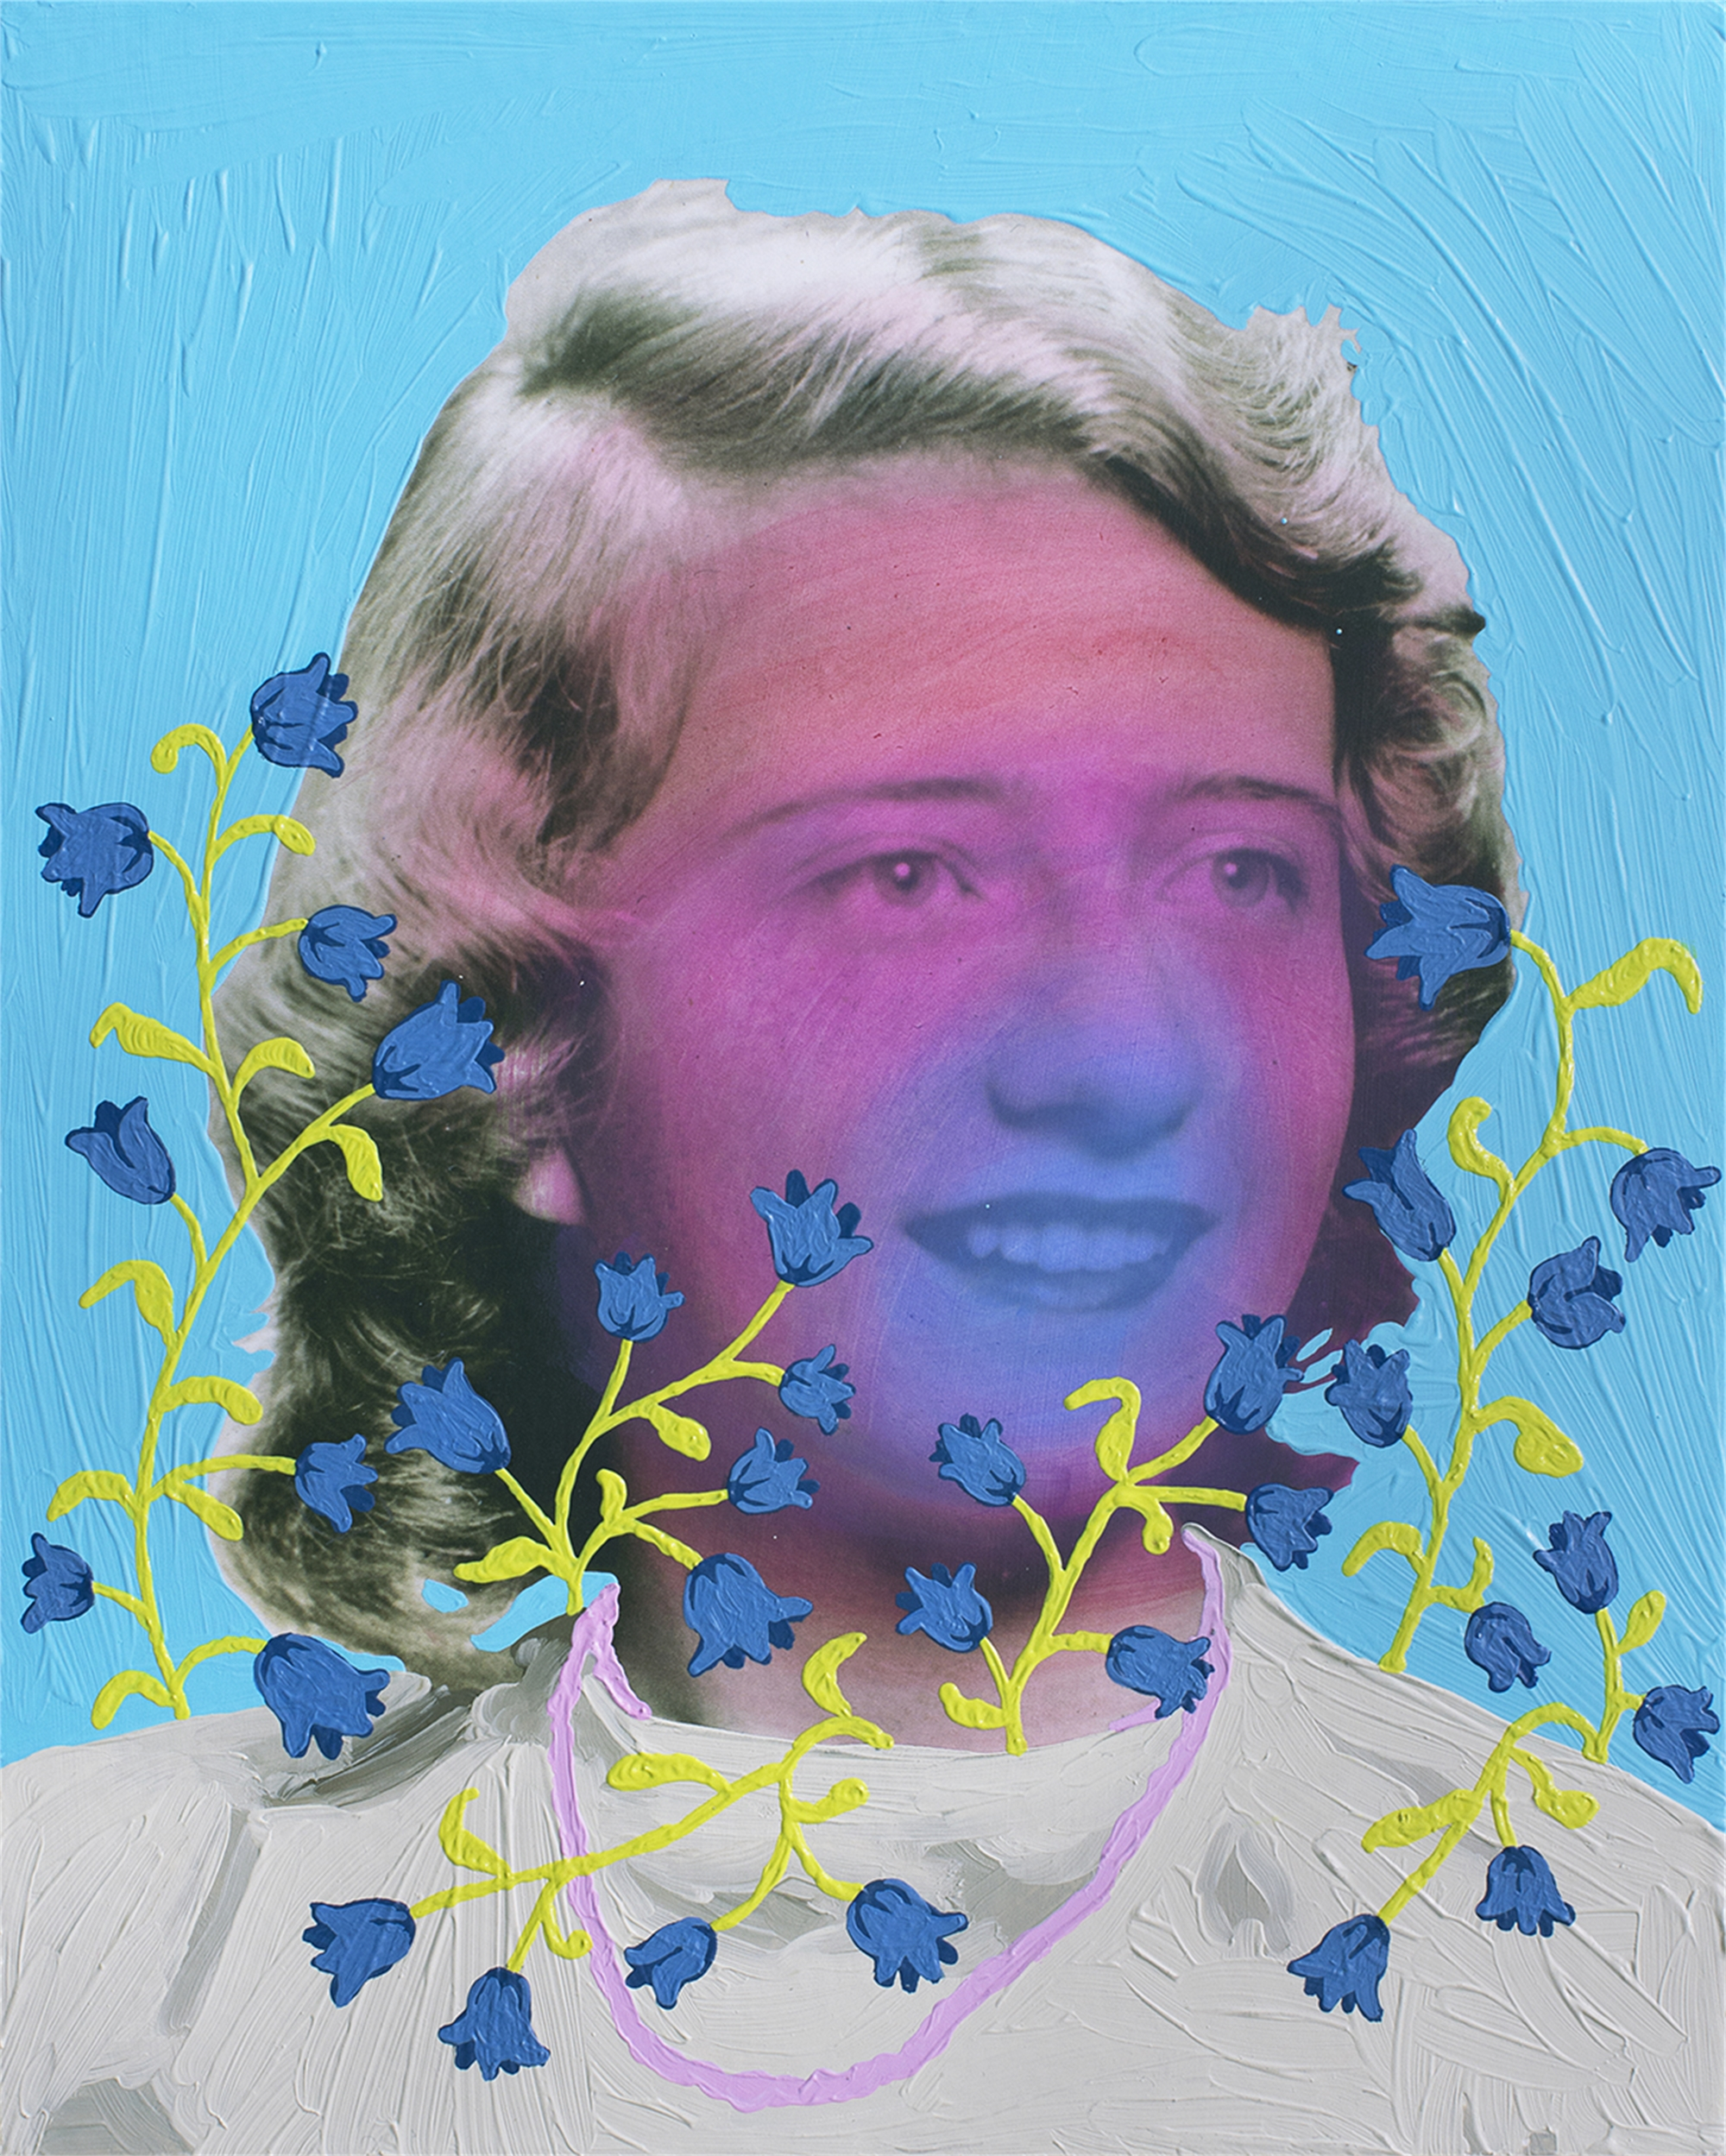 Untitled (Magenta Woman with Bluebells) by Daisy Patton